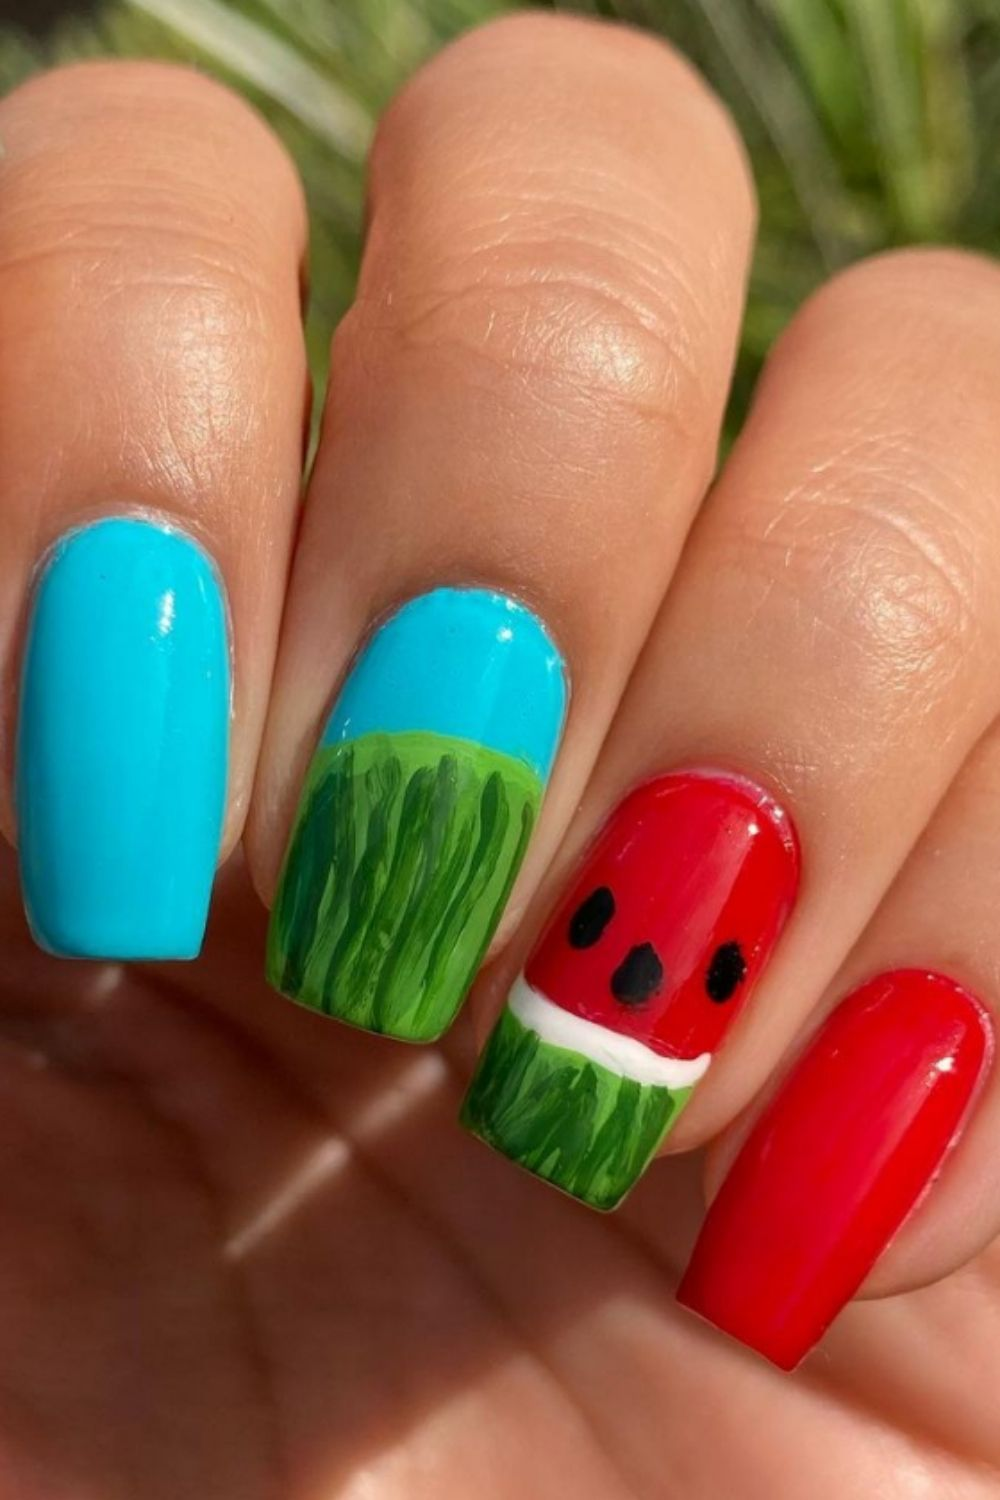 Coffin nails with French tip  35 Cute Nails With French Tips To DIY Now